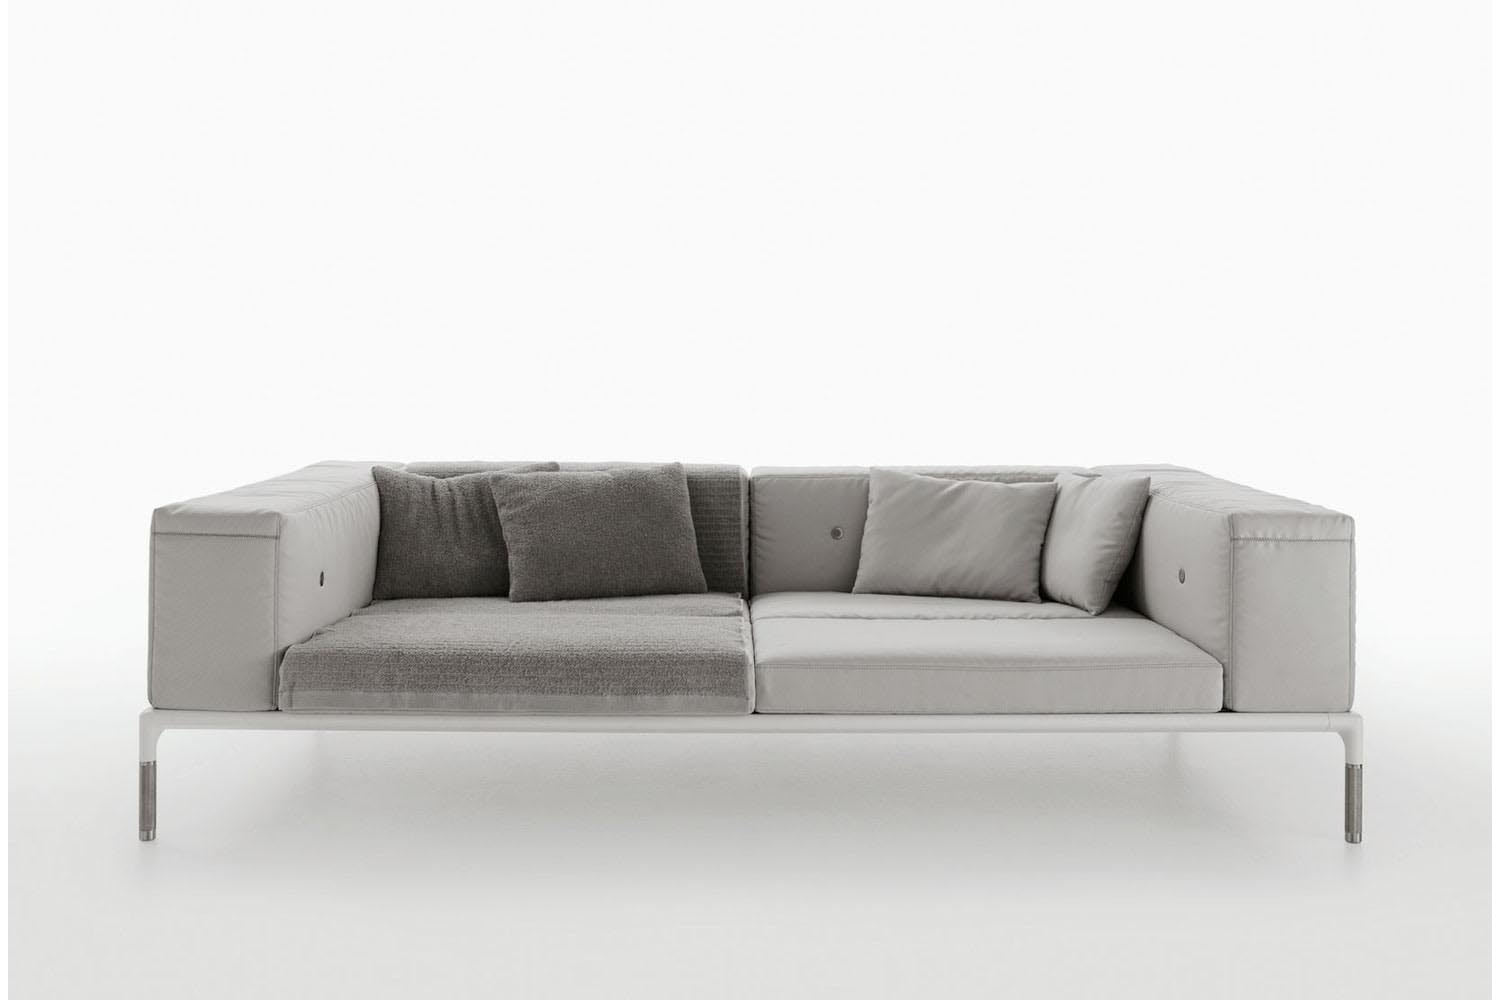 Springtime Sofa by Jean-Marie Massaud for B&B Italia